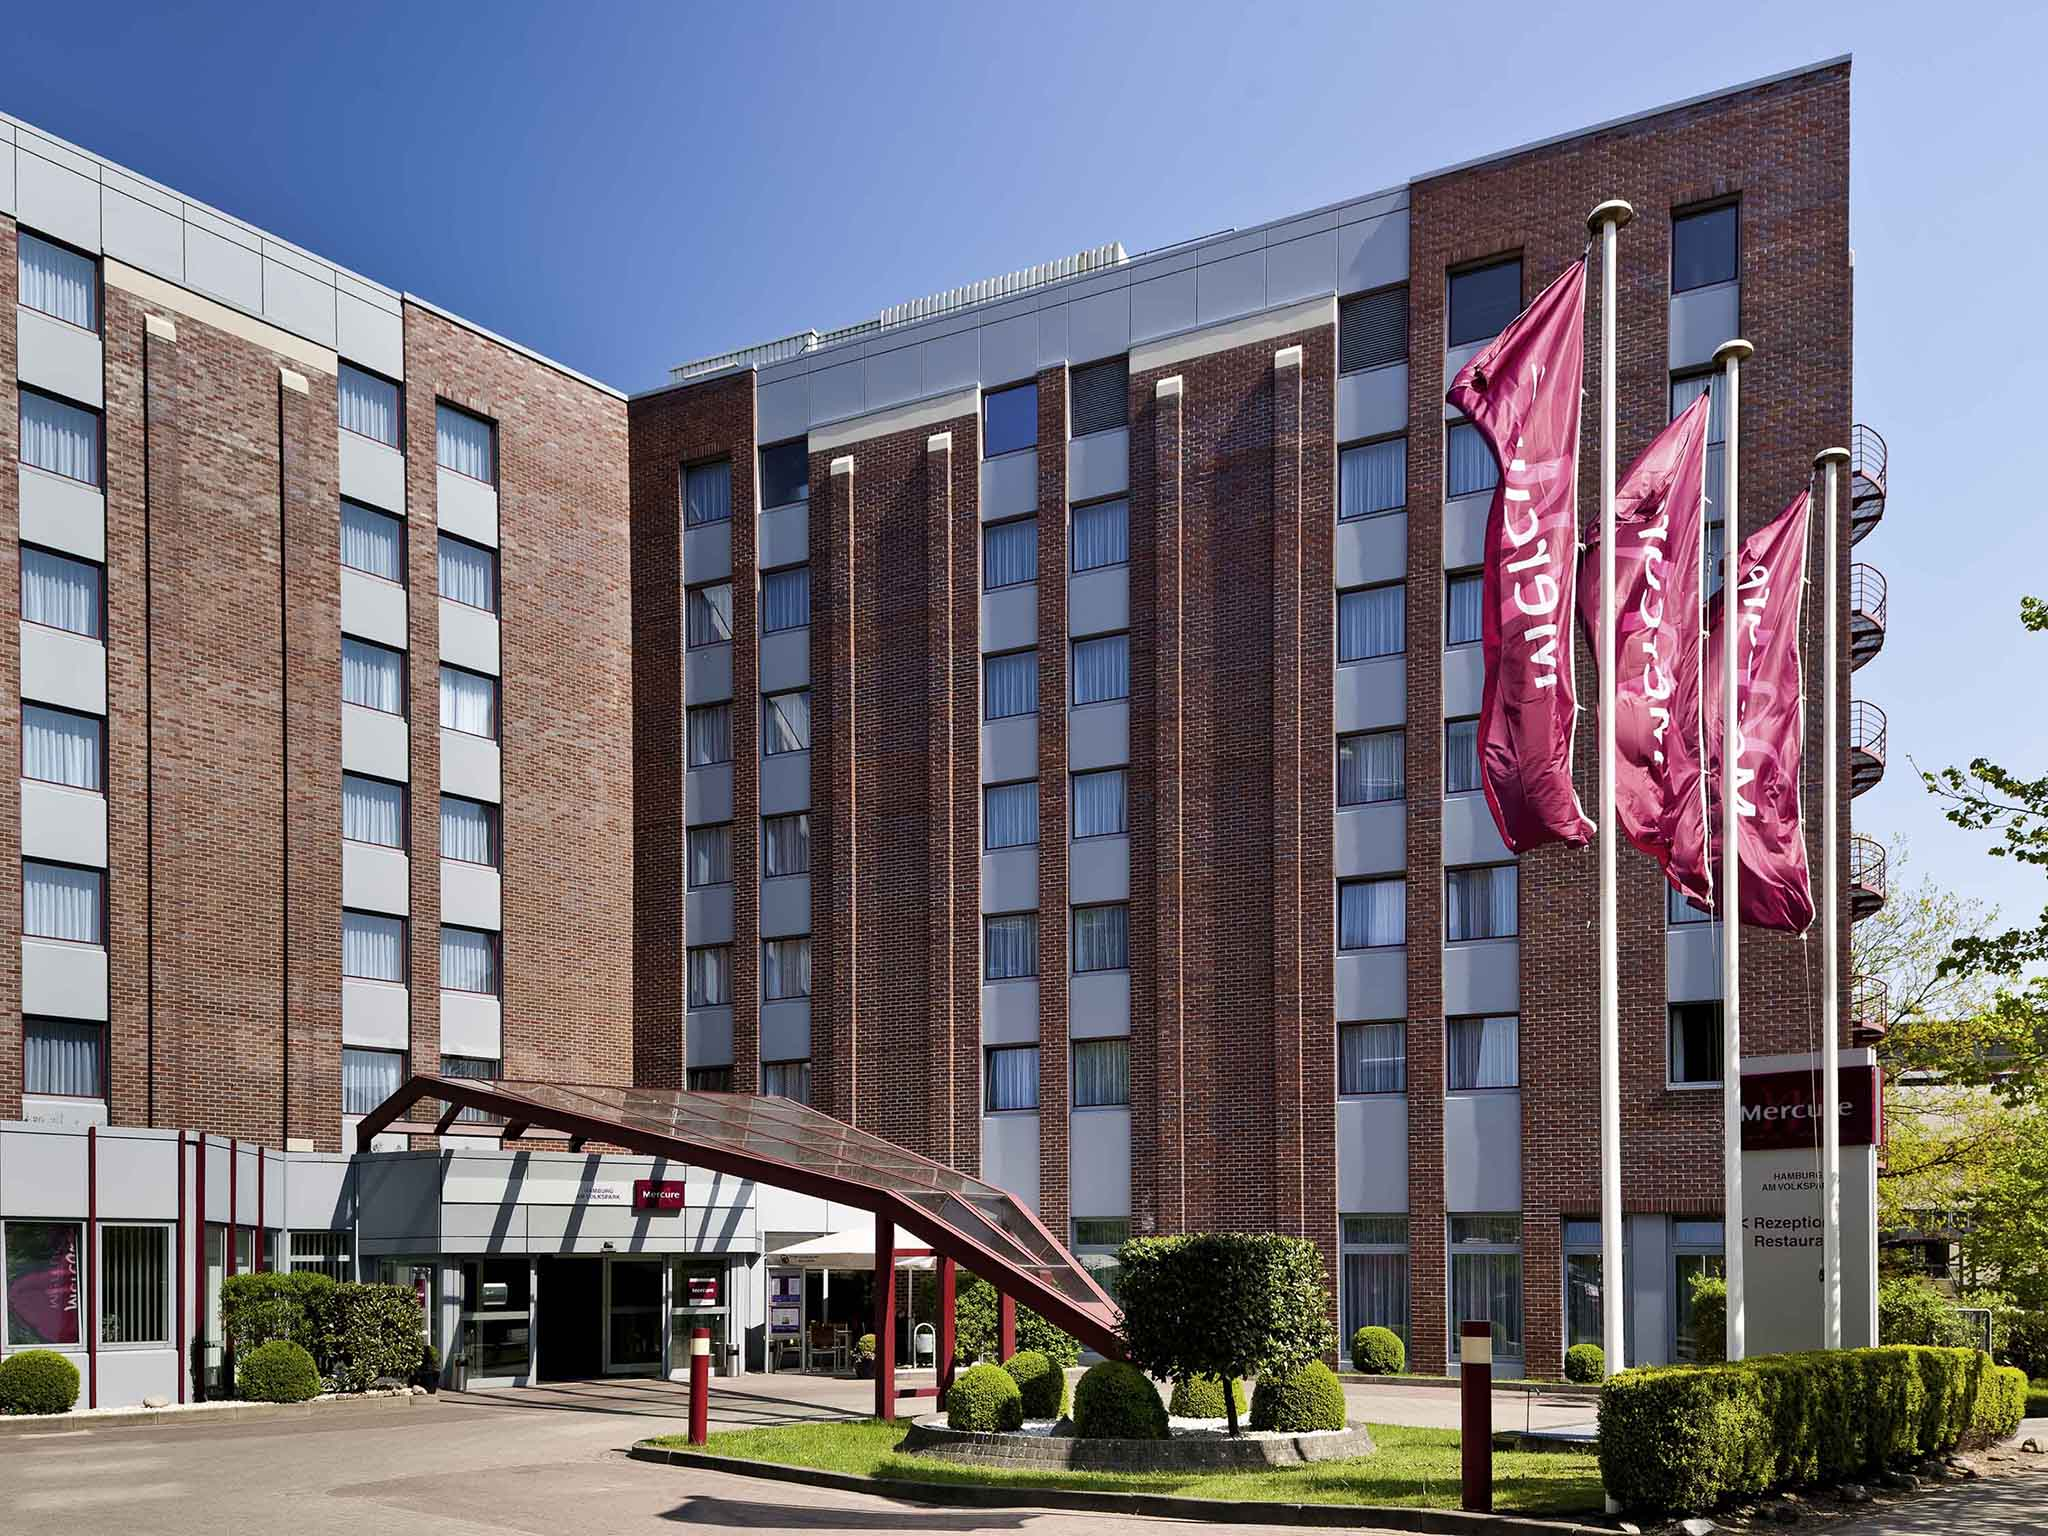 โรงแรม – Mercure Hotel Hamburg am Volkspark